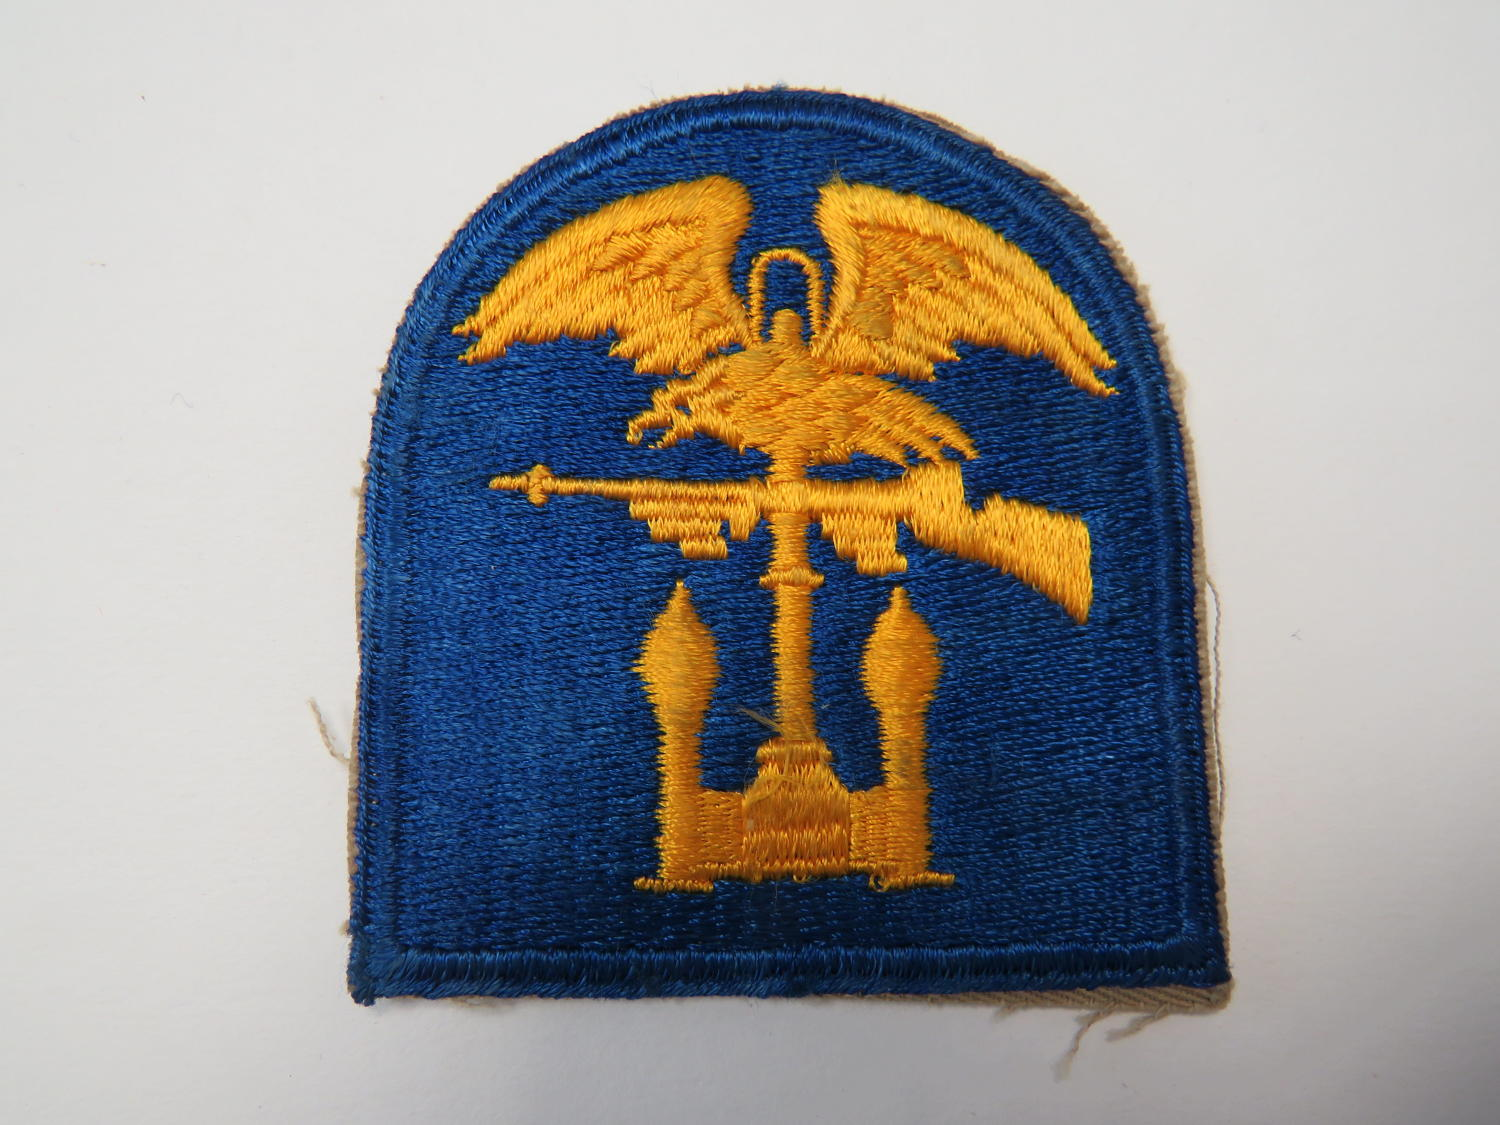 WW 2 American Amphibious Units Formation Badge